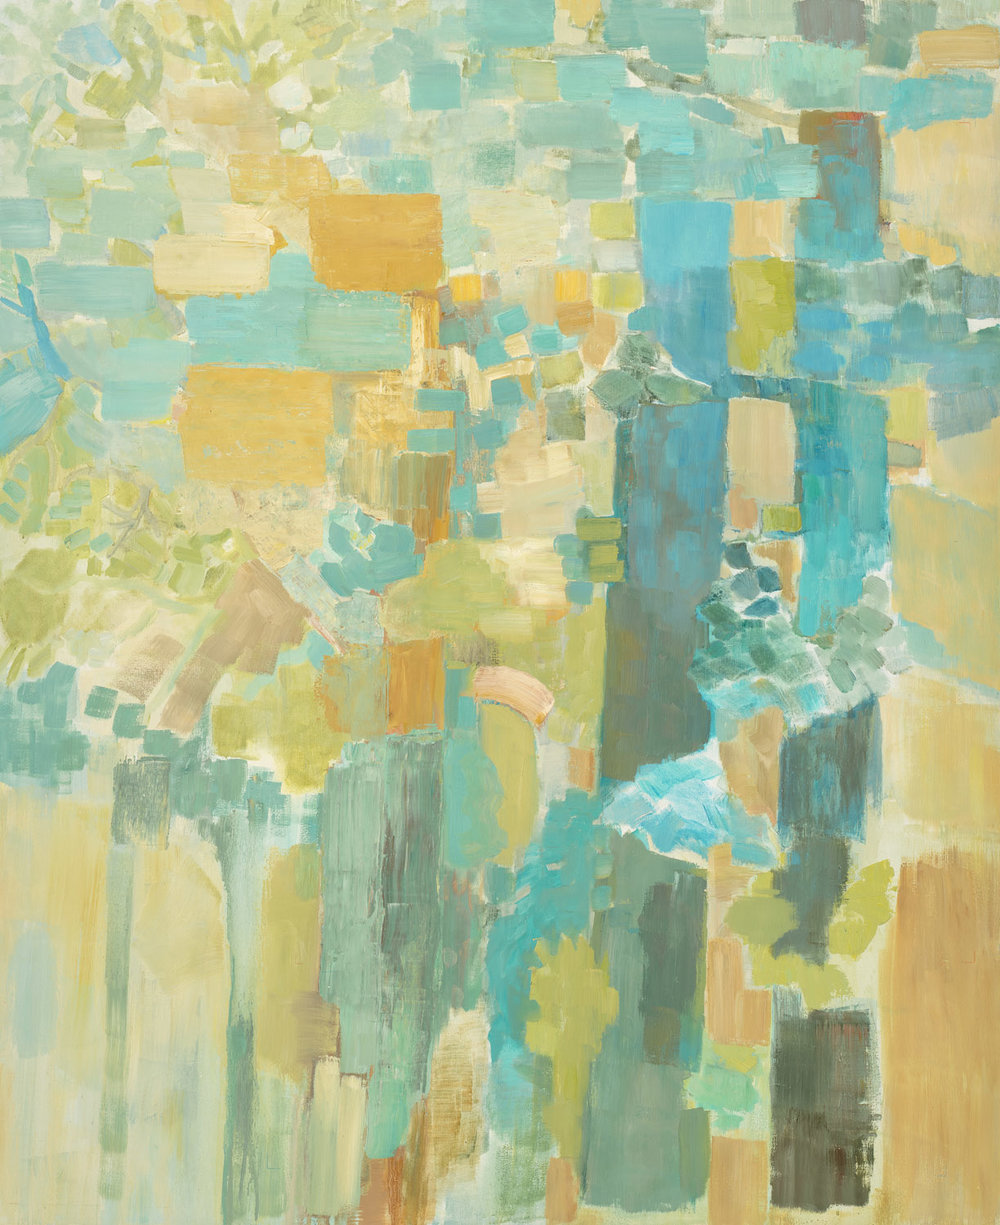 SUMMER WOOD  •  oil on wood  •  44 by 36 inches  •  2012